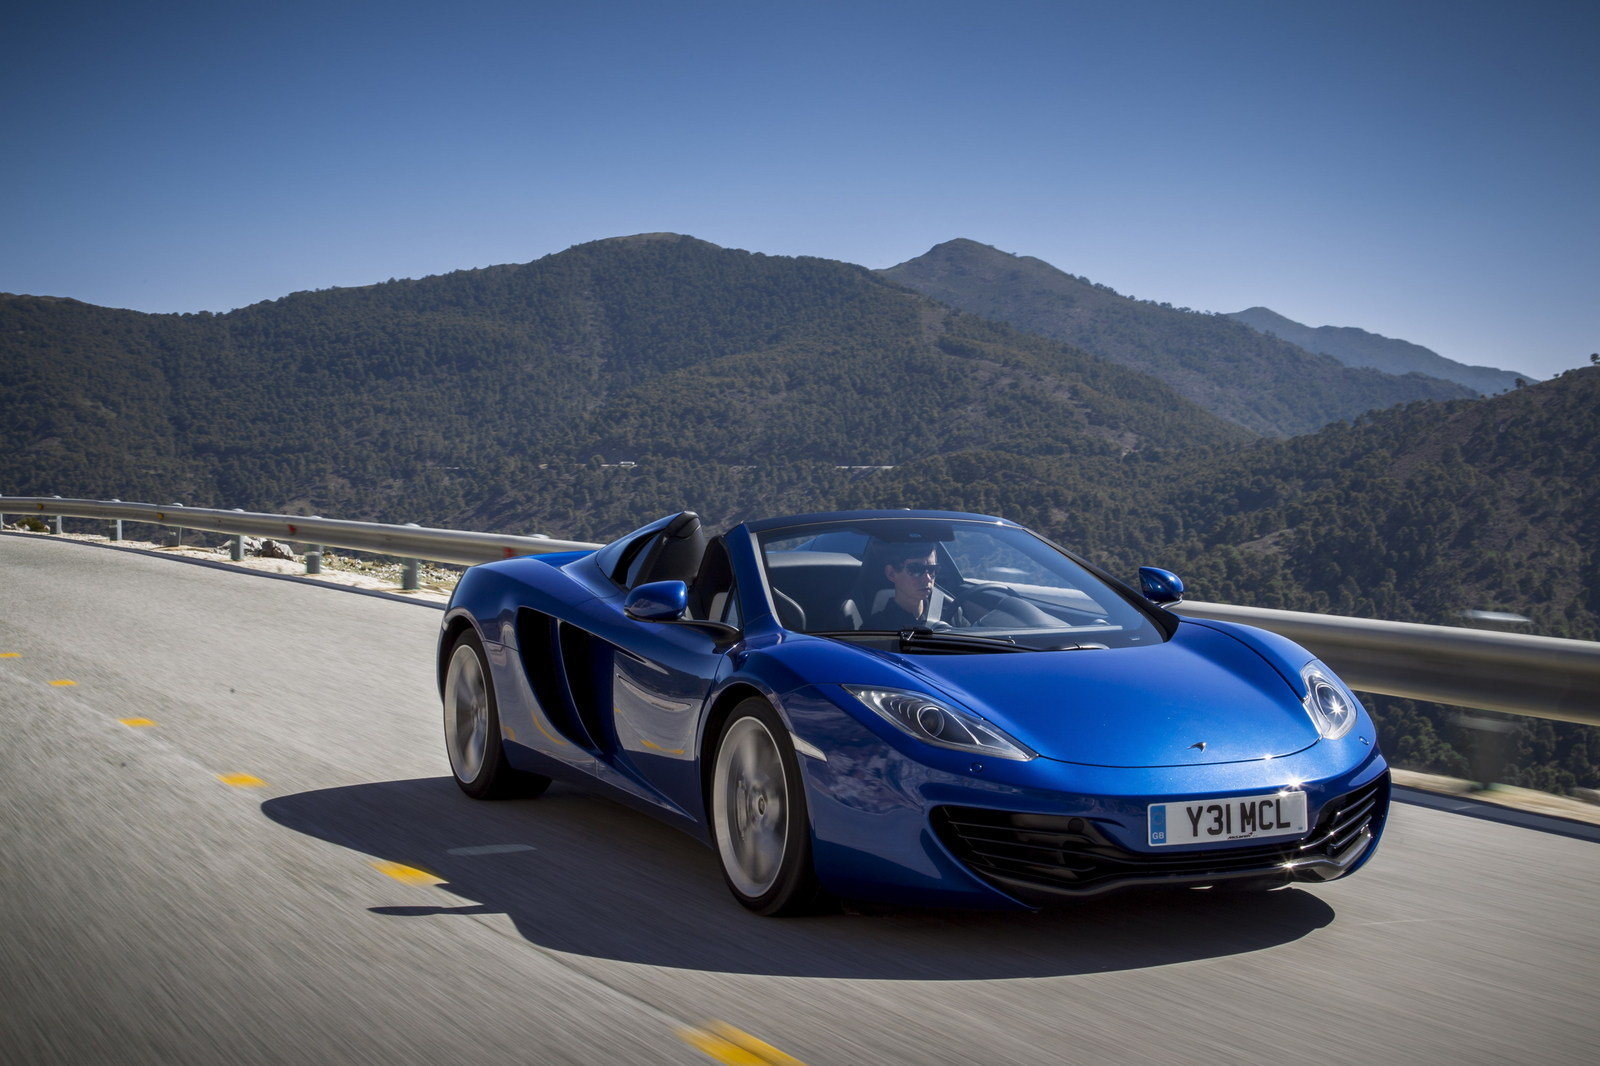 2013 mclaren mp4 12c spyder picture 477839 car review top speed. Black Bedroom Furniture Sets. Home Design Ideas